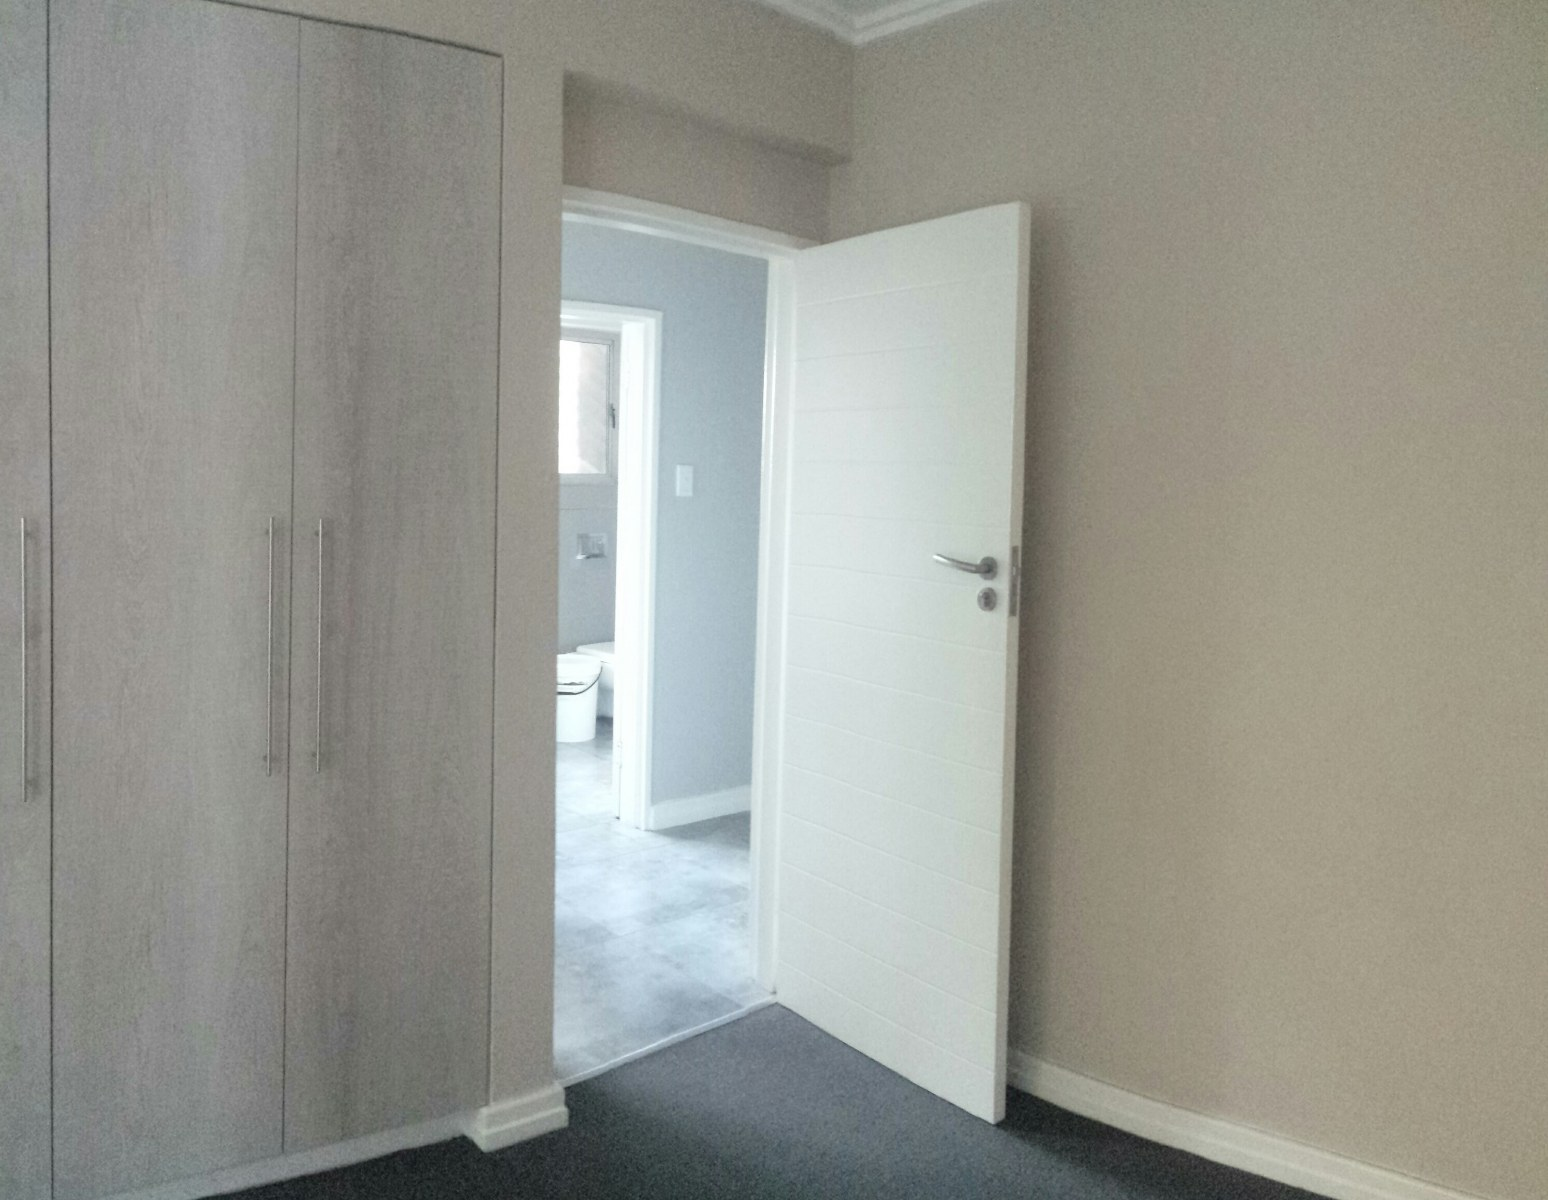 3 Bedroom Apartment for sale in Sea Point ENT0067155 : photo#13